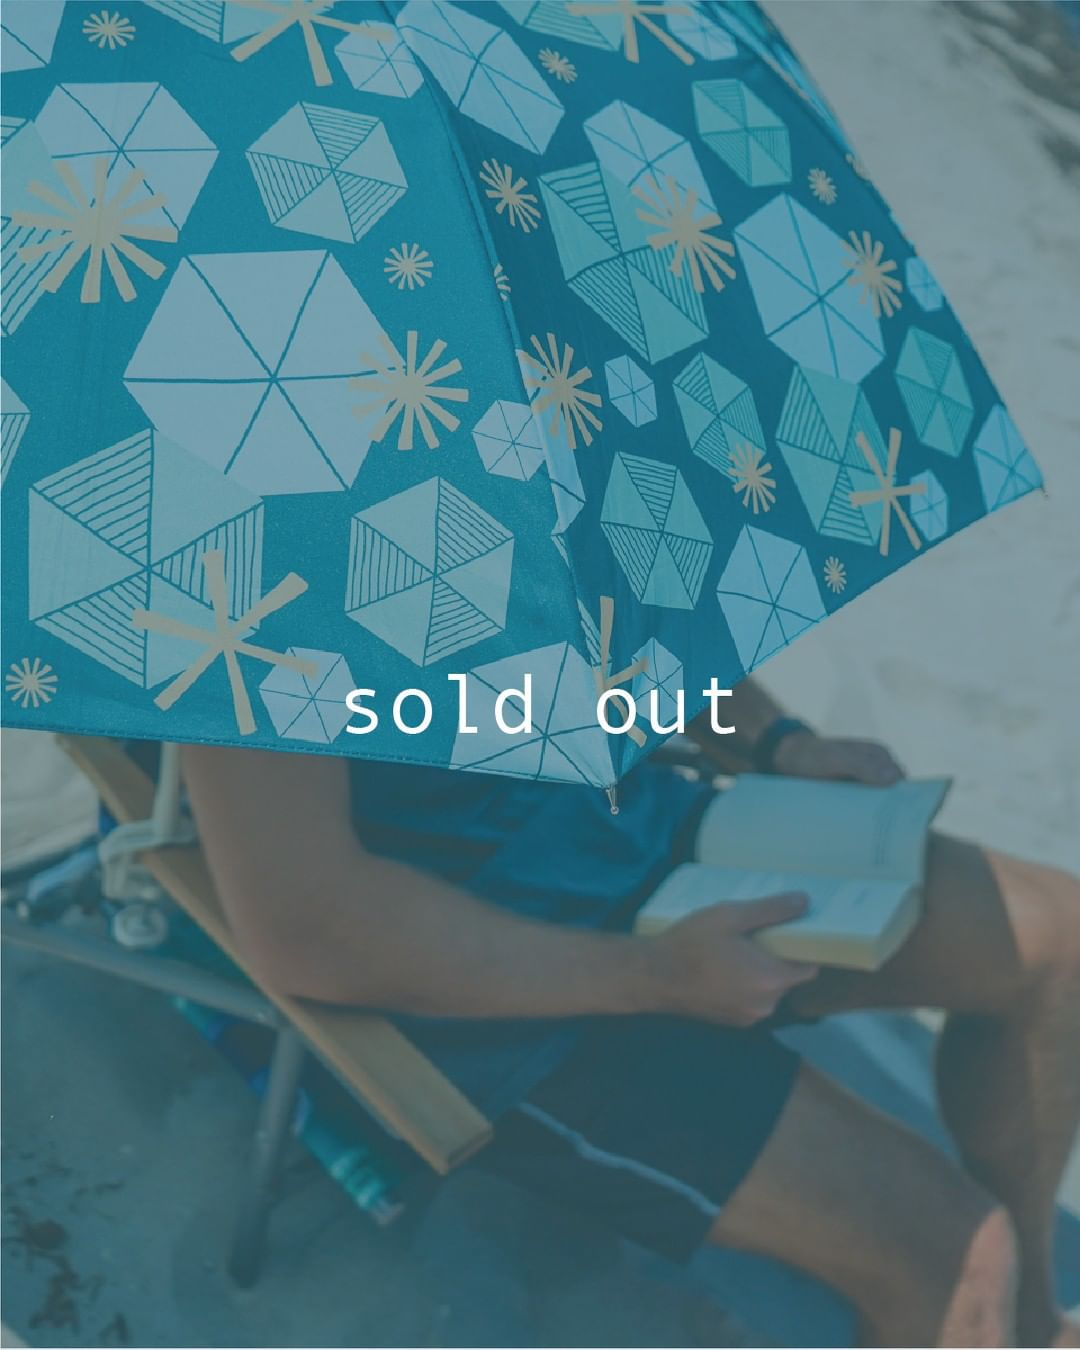 LBI Thank you so much for all the support, we have SOLD OUT of our first product! Th…